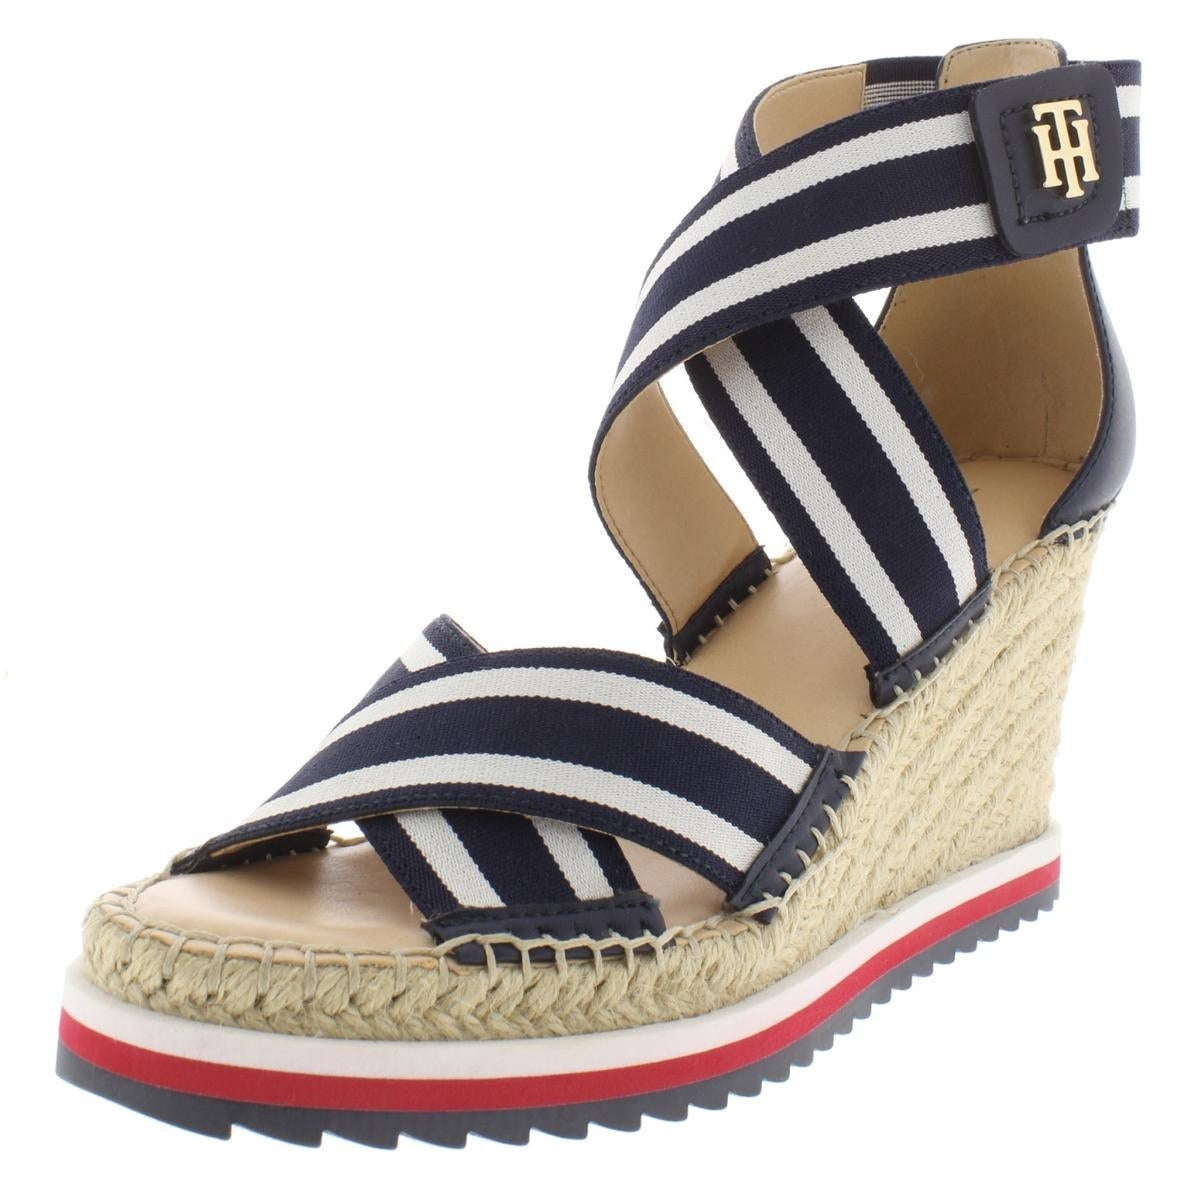 4f777dc65 Shop Tommy Hilfiger Womens Yesia Wedge Sandals Stretch - Free Shipping On  Orders Over  45 - Overstock - 27619839